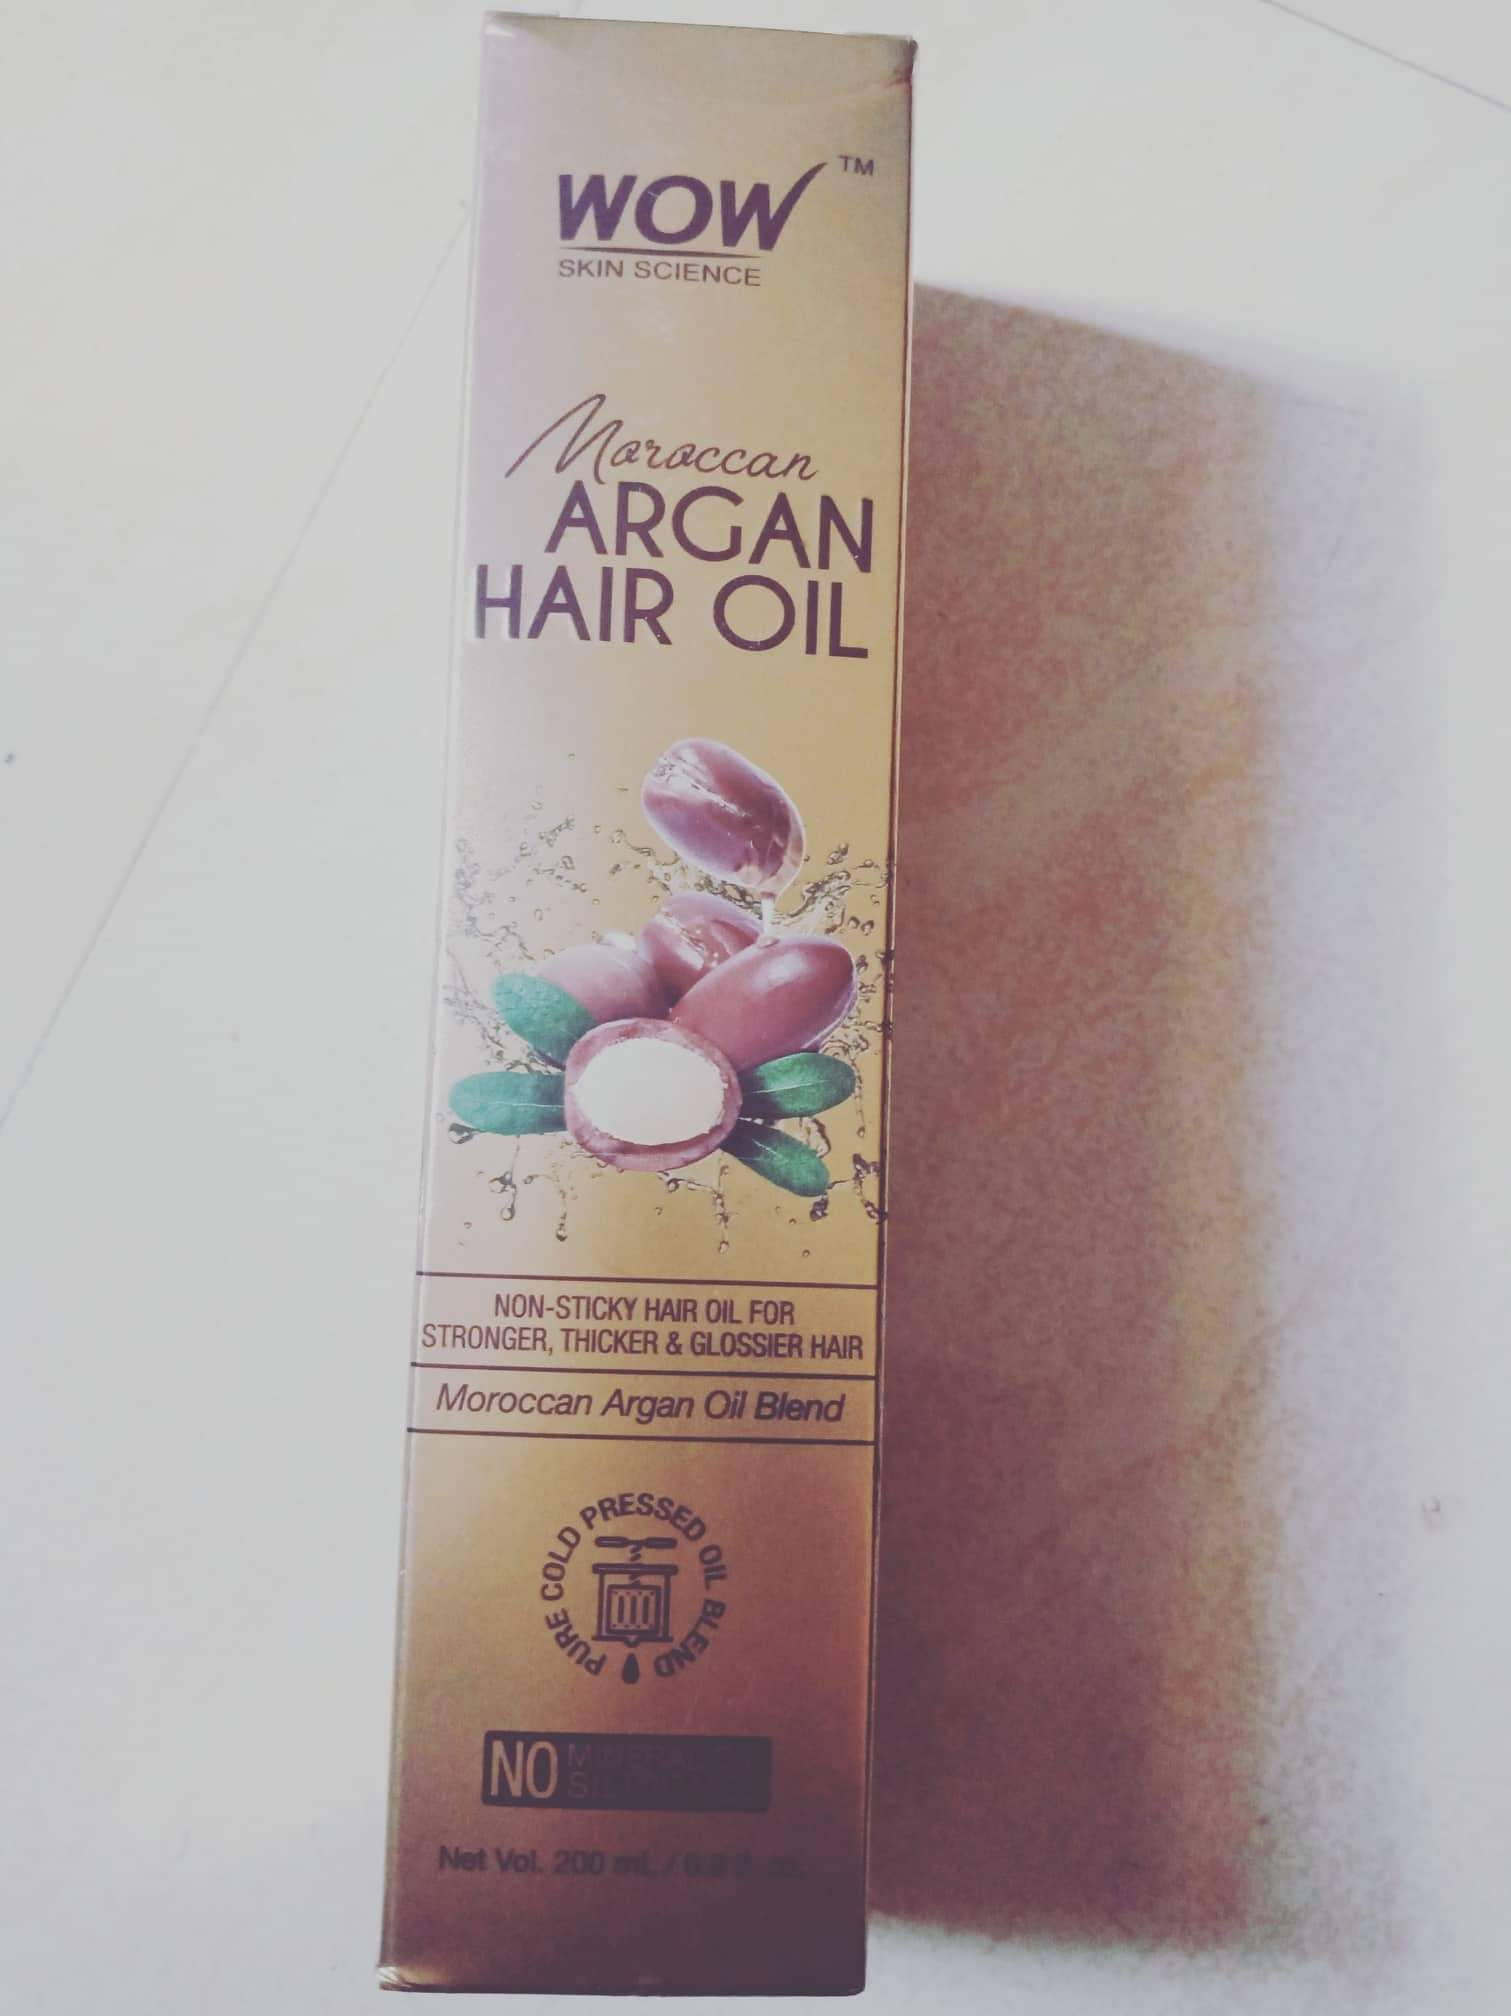 WOW MOROCCAN ARGAN HAIR OIL-Controls Fizz!-By poonam_kakkar-2